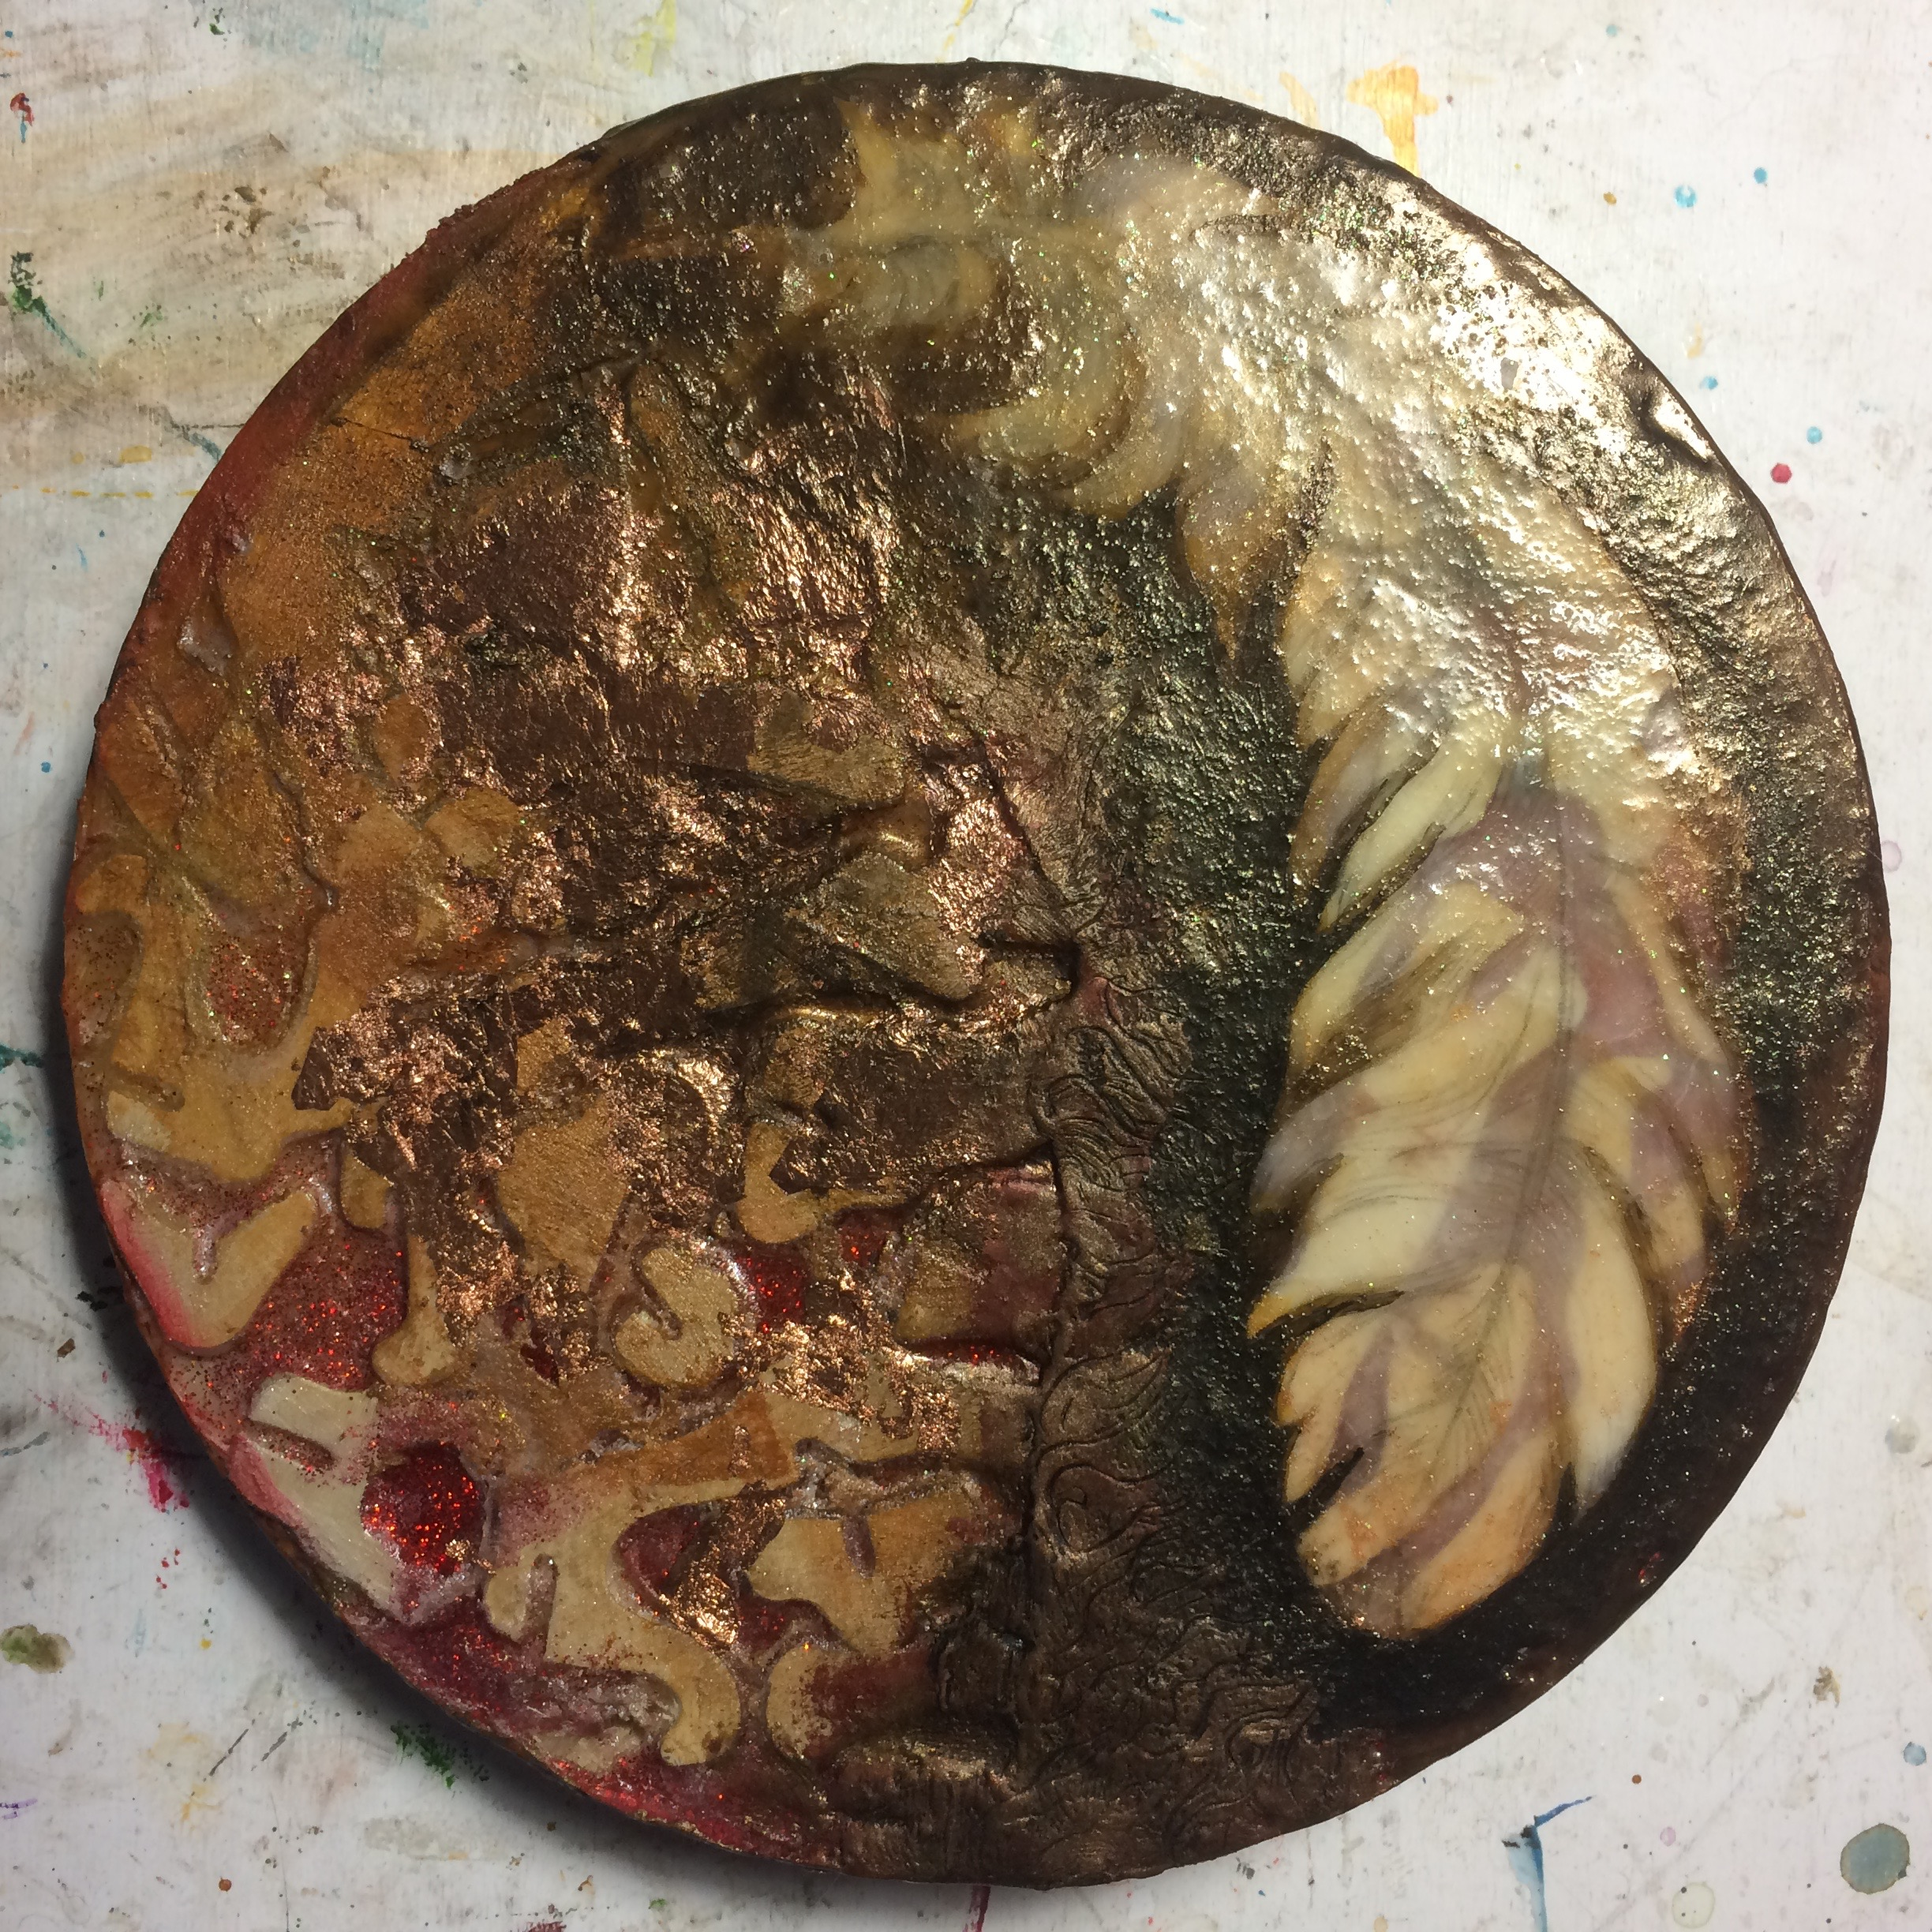 (K) Wax, pan pastel, pigment around edge and center, incised. (A) Defined feather edges, highlighted pieces.